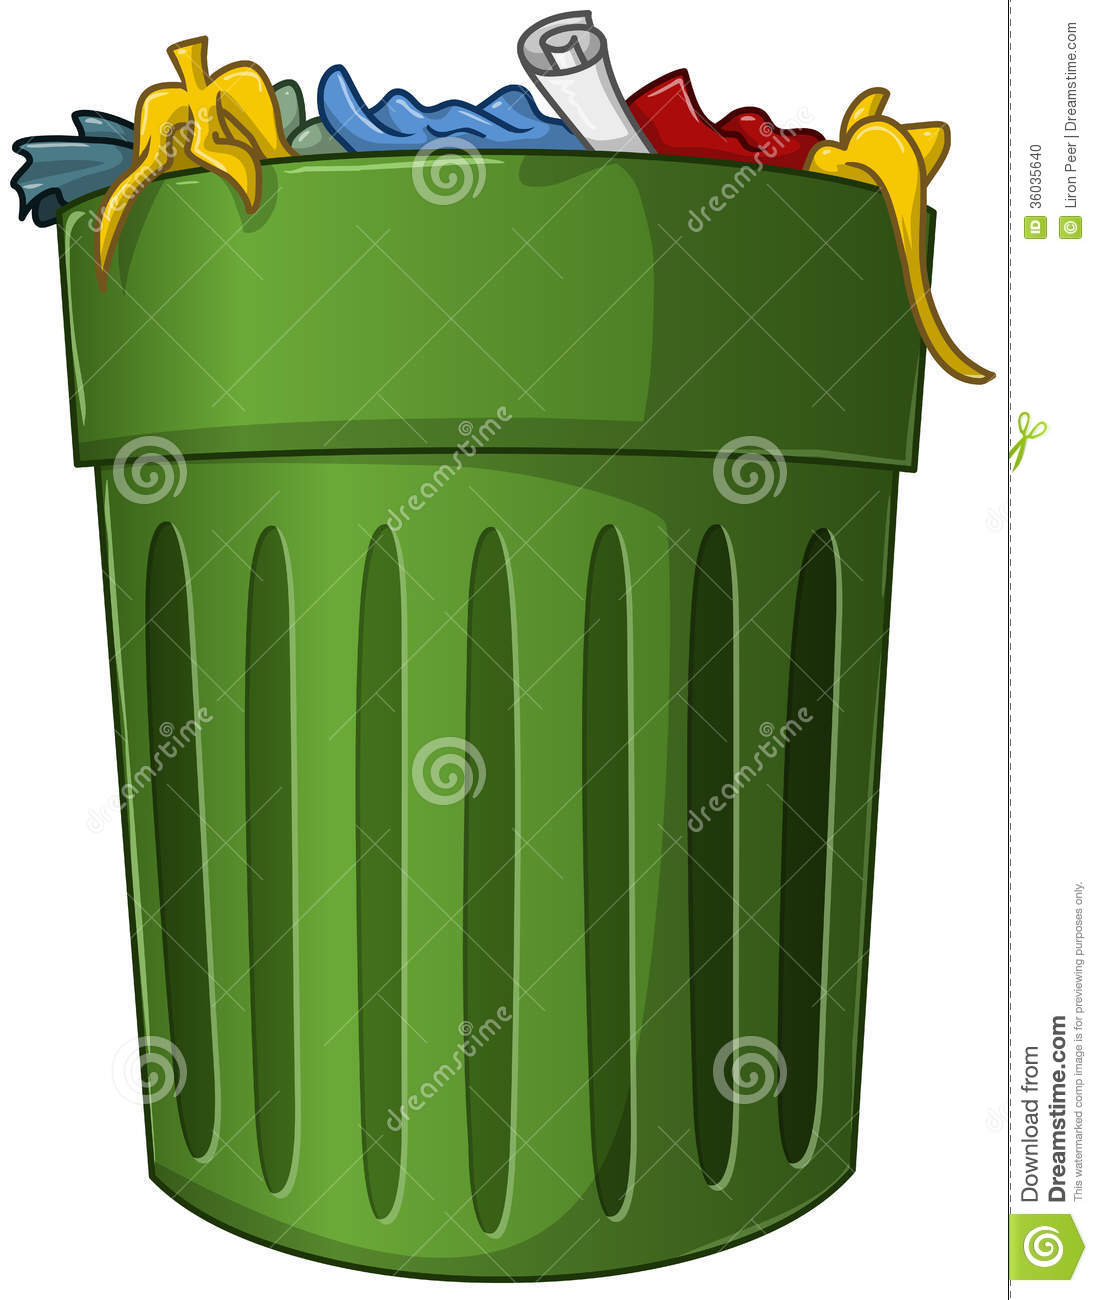 Big W Rubbish Bin Trash Can With Trash Inside Stock Vector Image 36035640